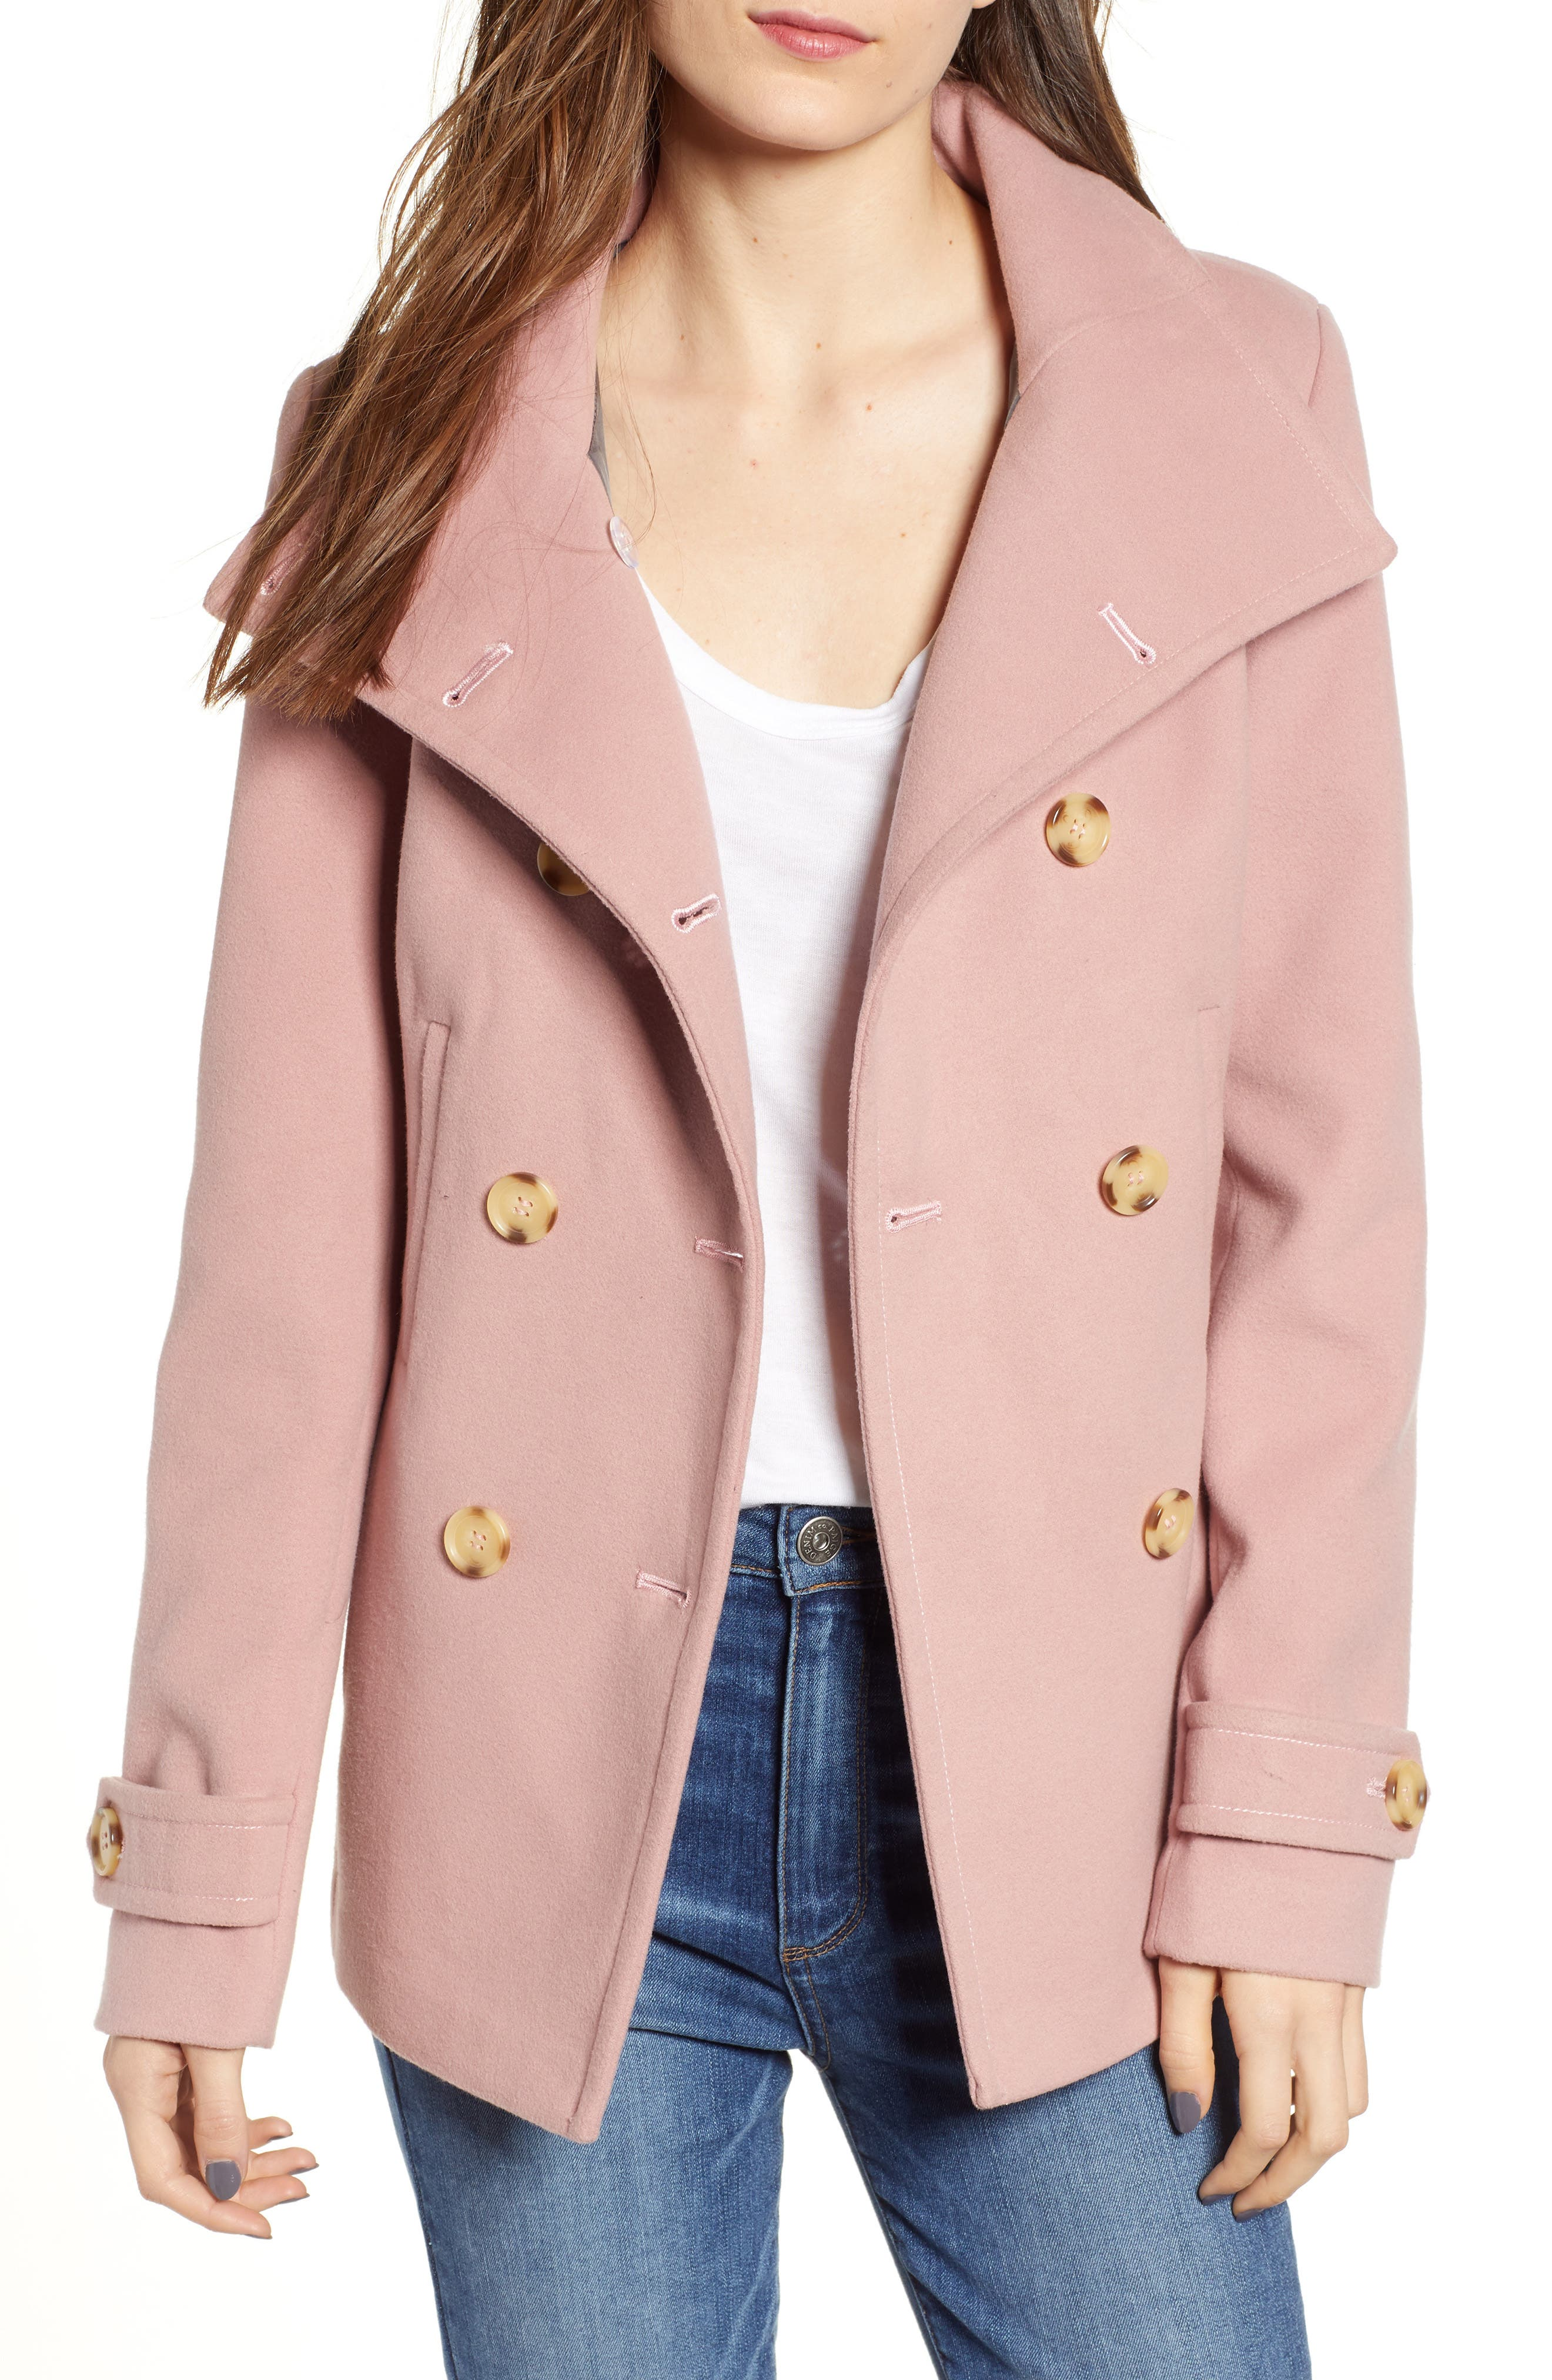 THREAD & SUPPLY,                             Double Breasted Peacoat,                             Main thumbnail 1, color,                             BLUSH